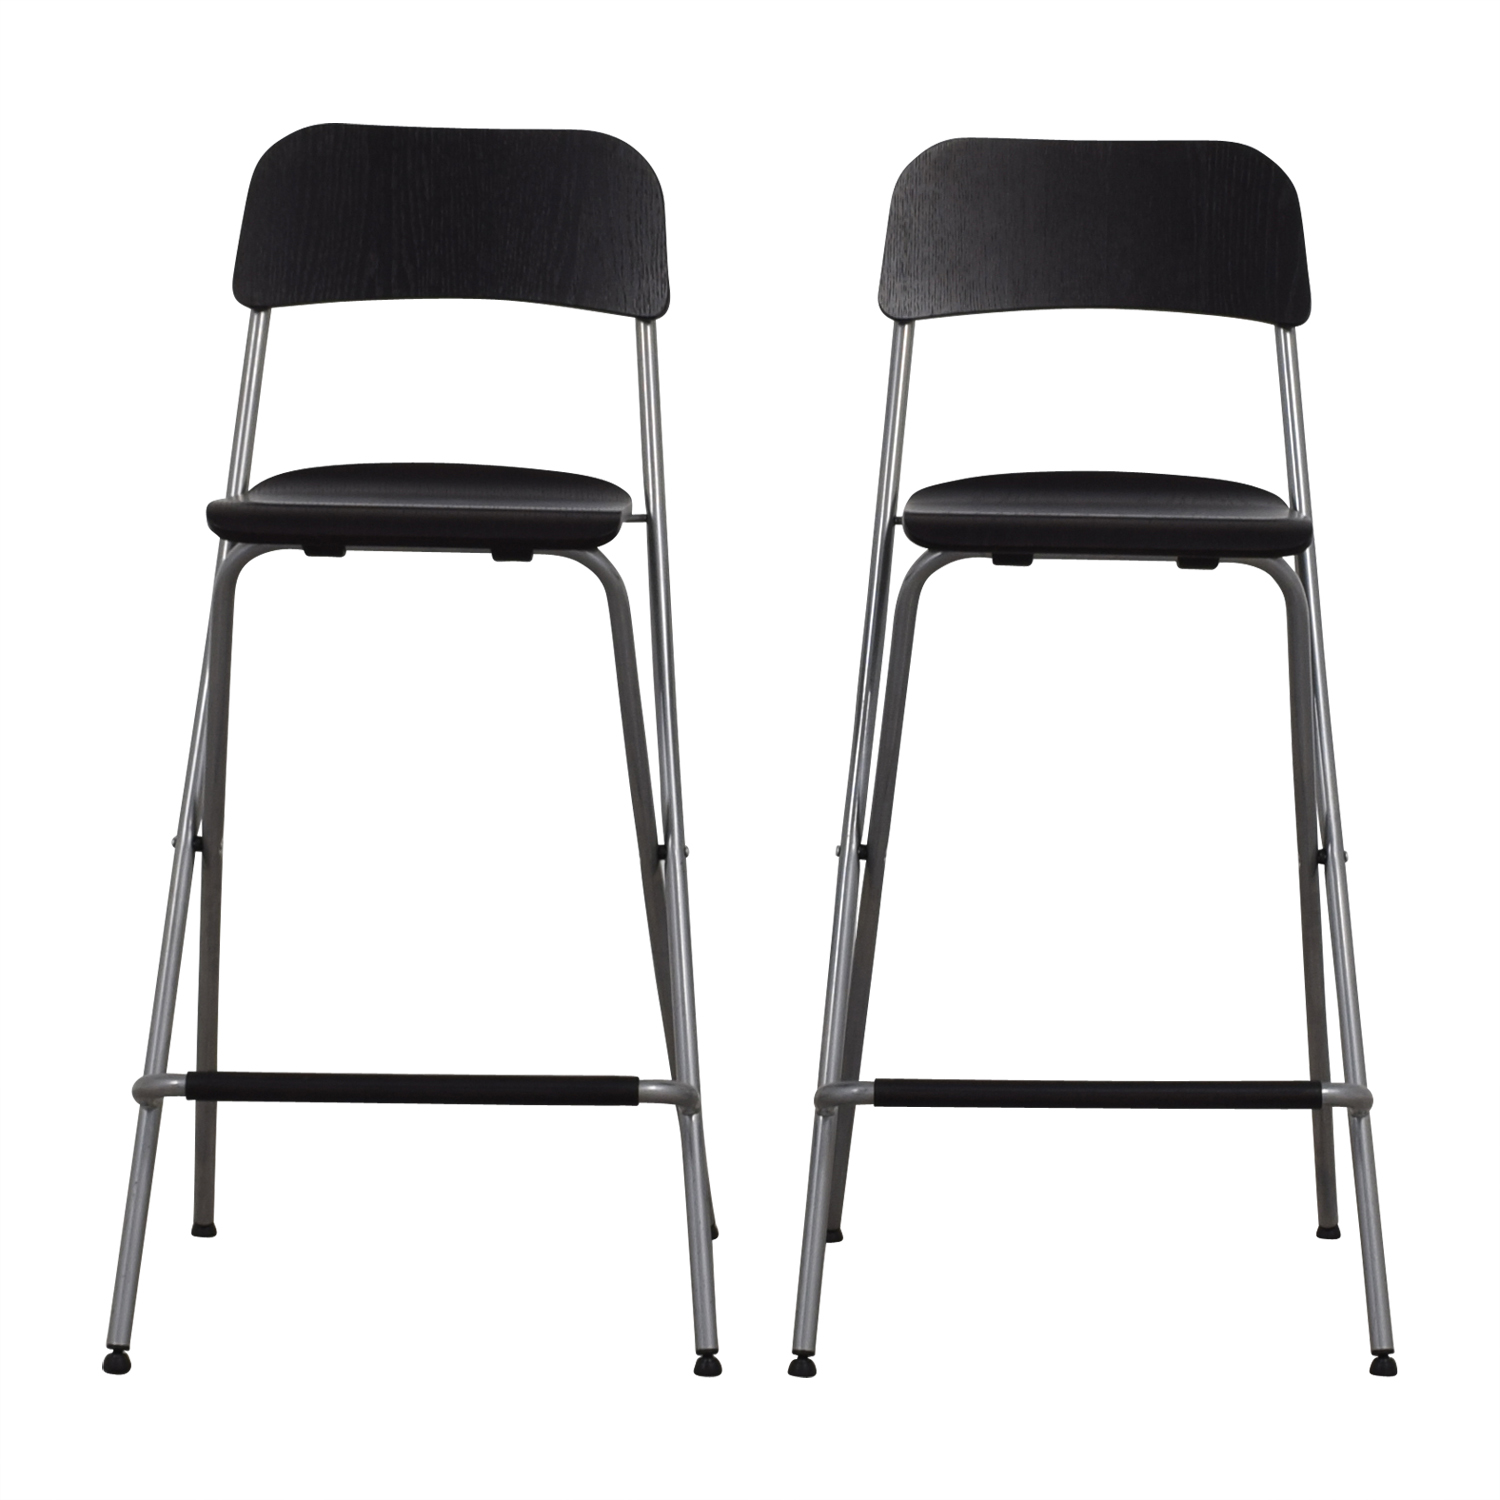 Inspirational ikea folding chairs for Ikea folding stool